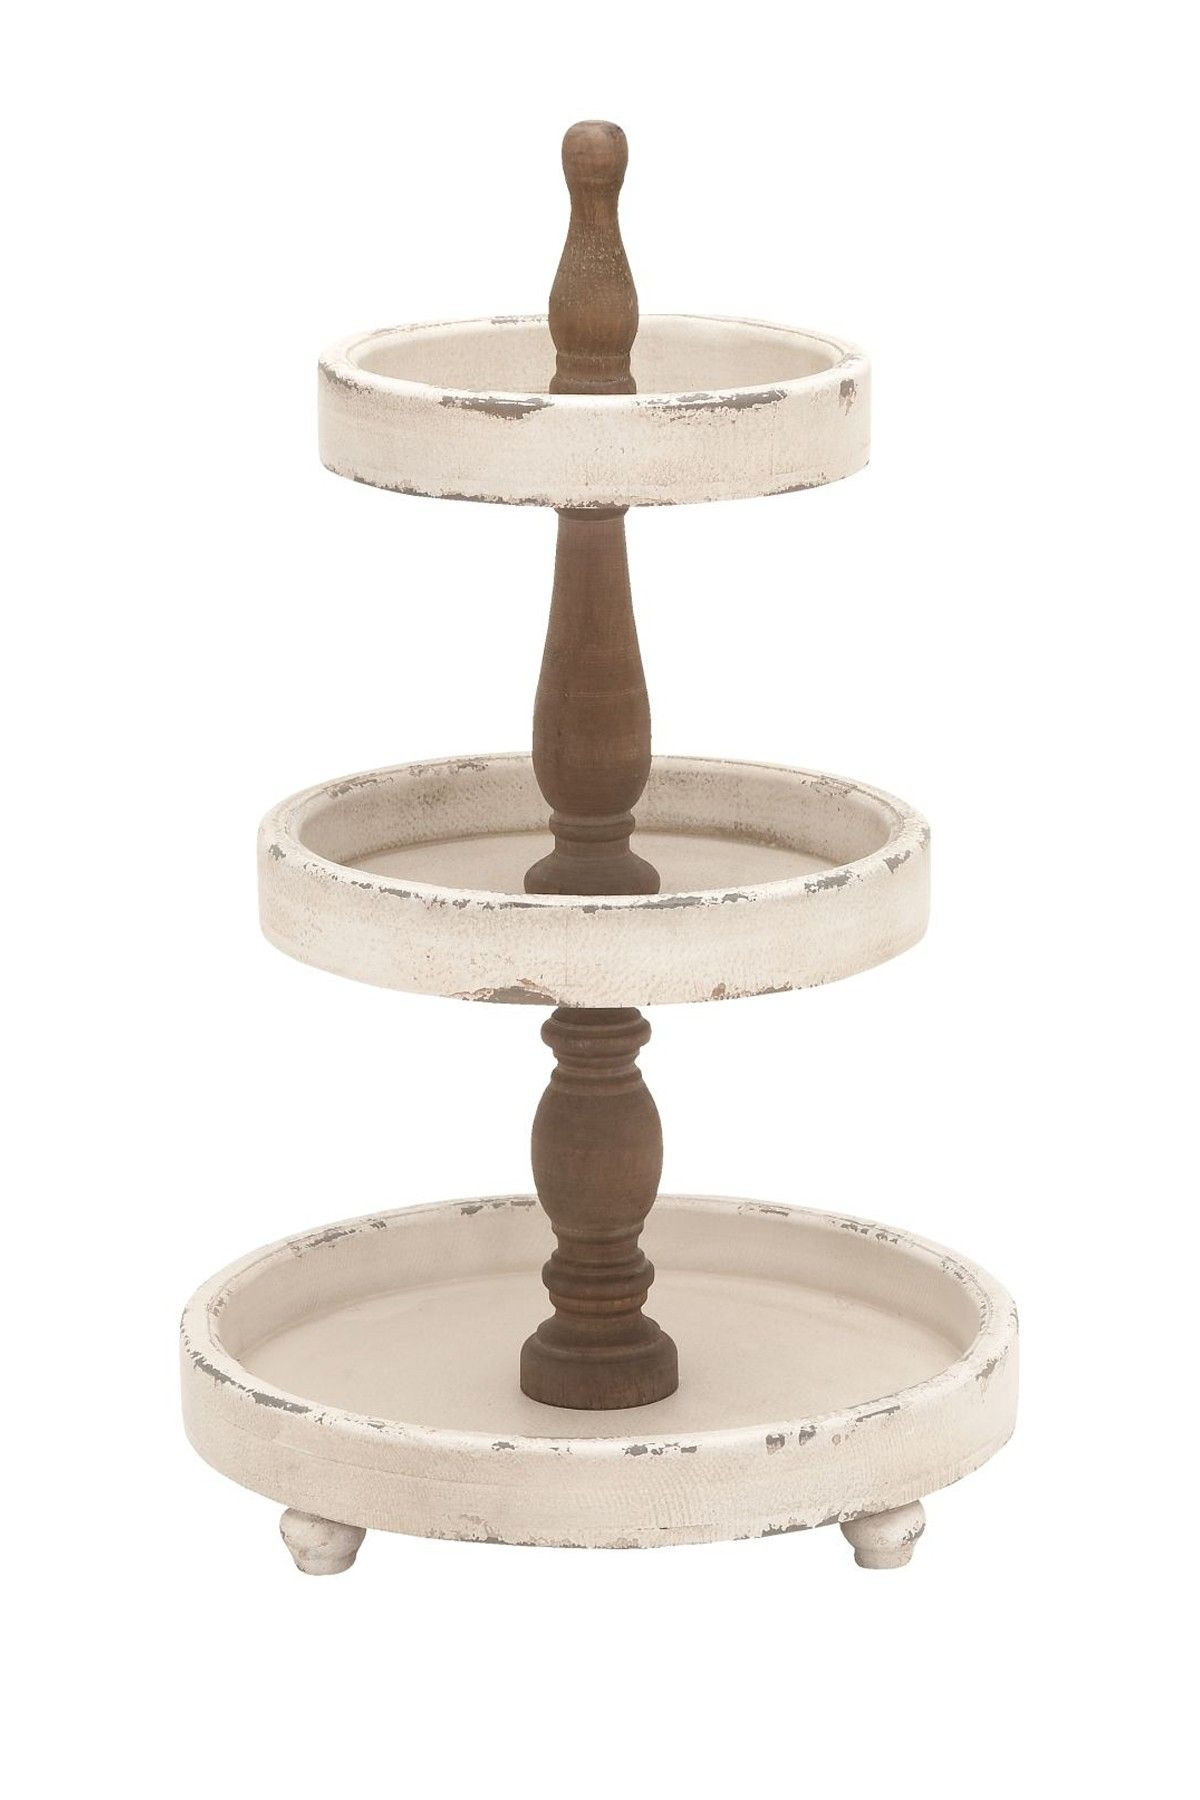 Three Tiered Round Wood Tray Wood Trays Candle Sticks With Final Tiered Tray Stand Tray Decor Wood Tray